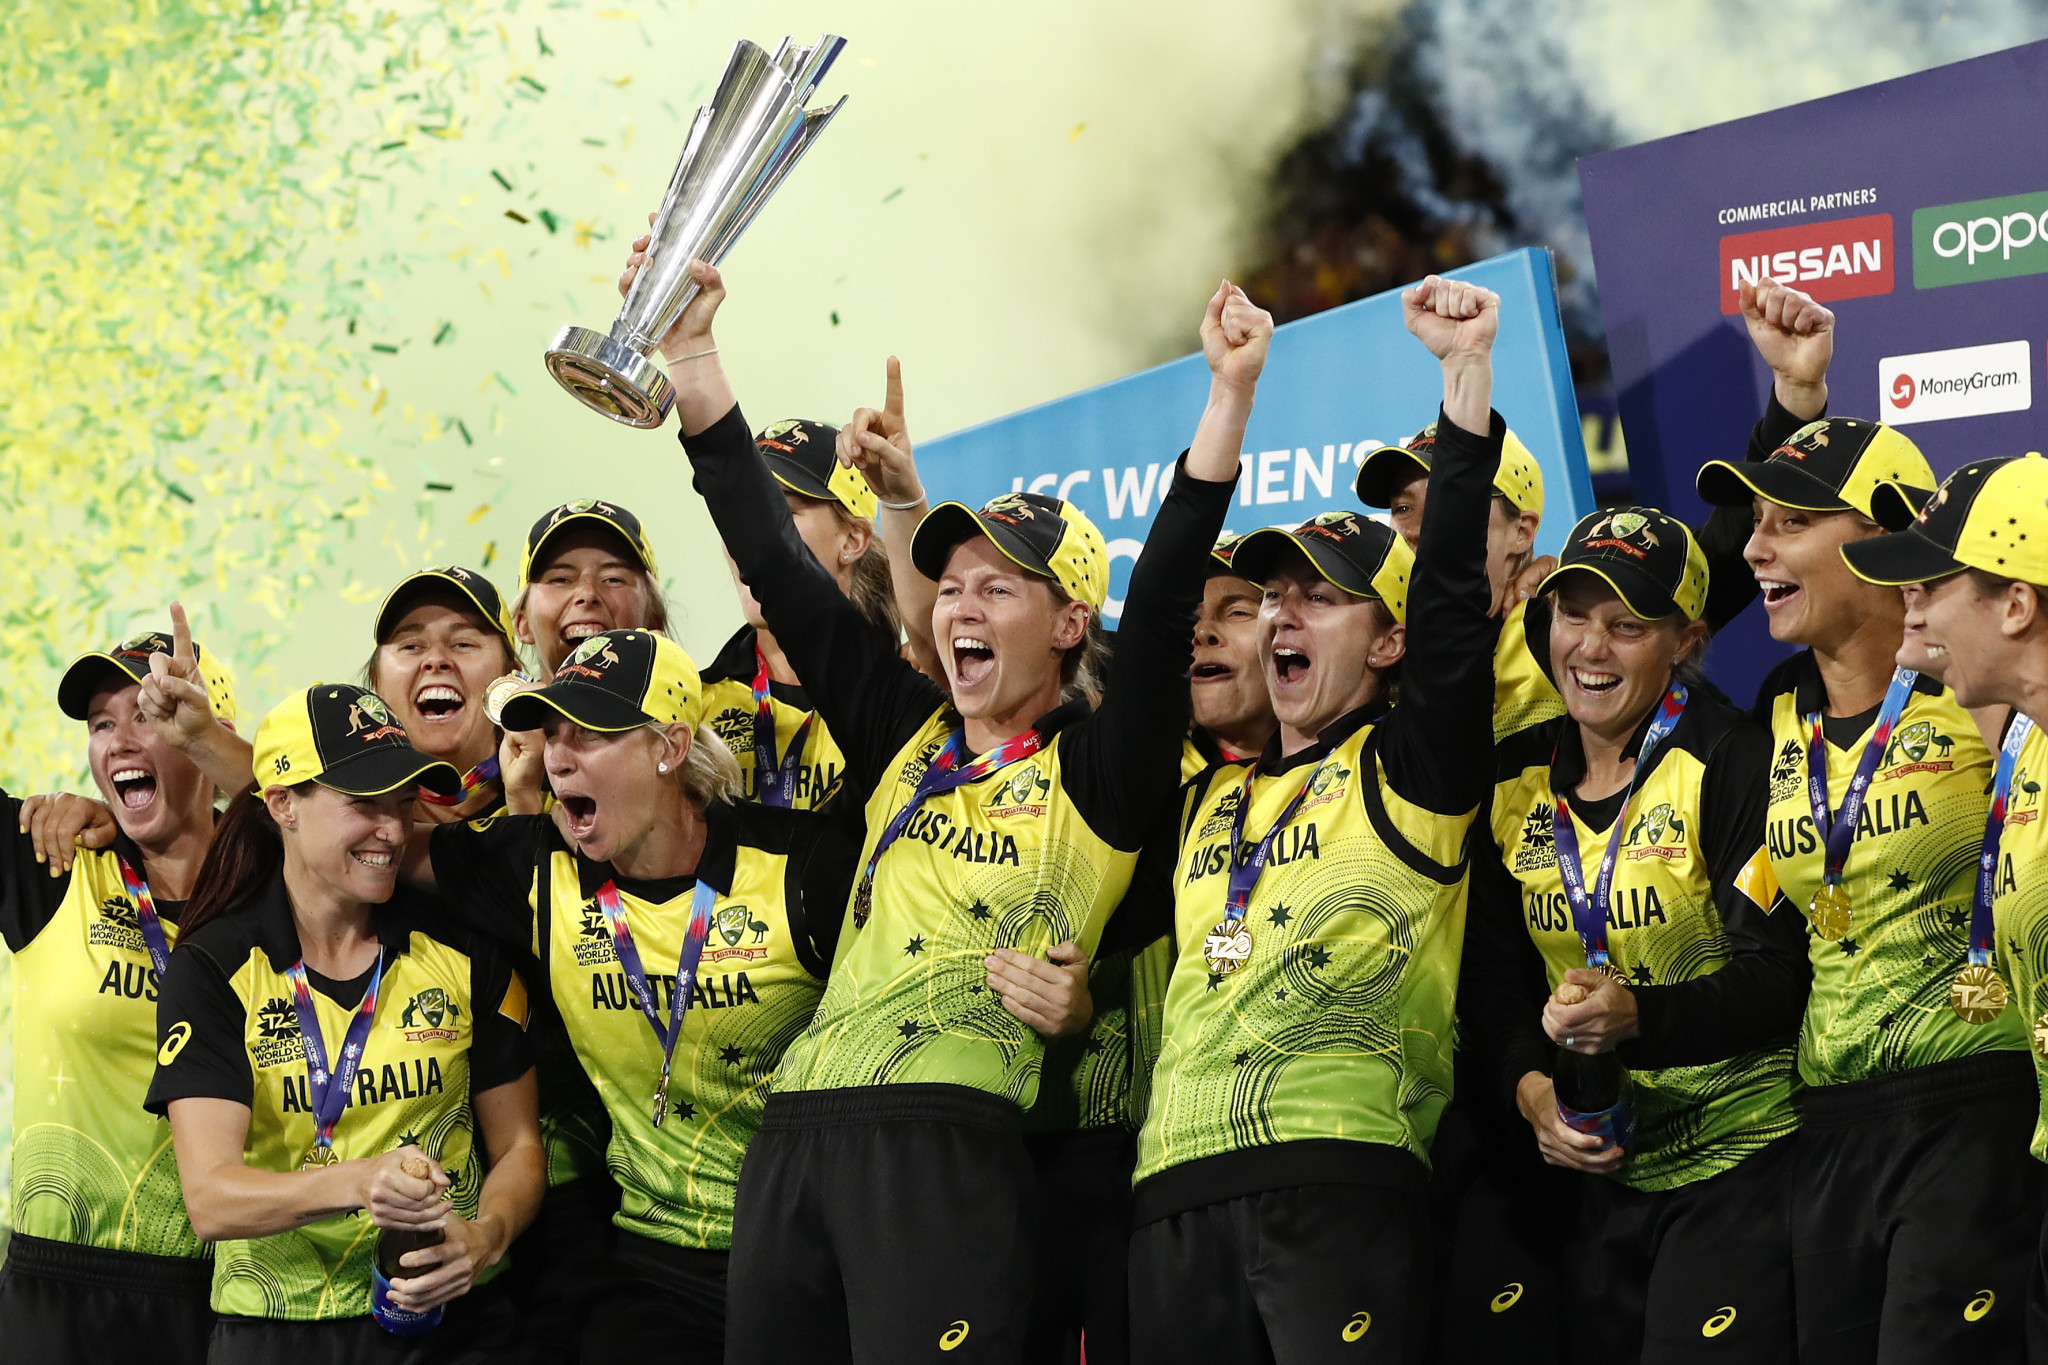 ICC announces expansion of Women's World Cups and new Women's T20 Champions Cup